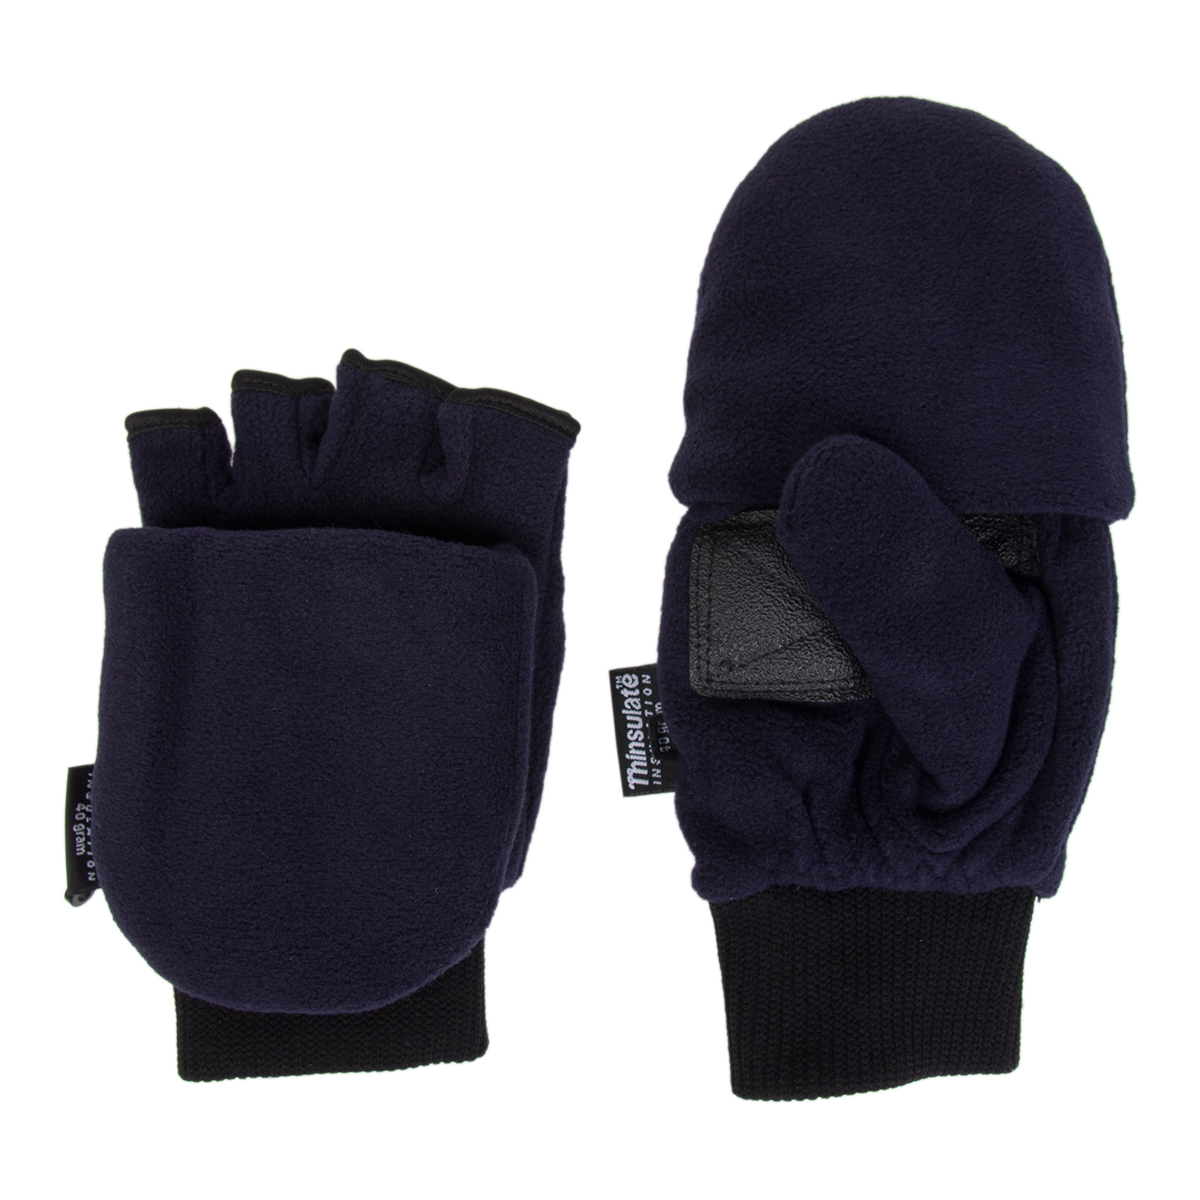 Find great deals on eBay for convertible mittens thinsulate. Shop with confidence.